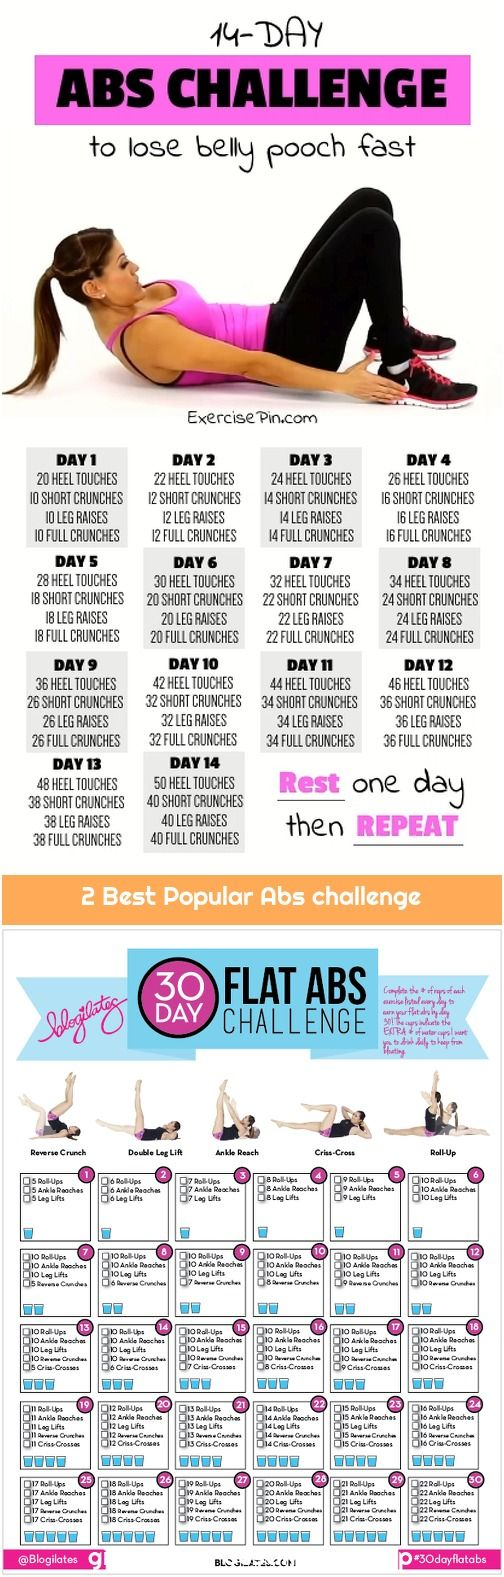 Pin On Health Fitness Board 2 New